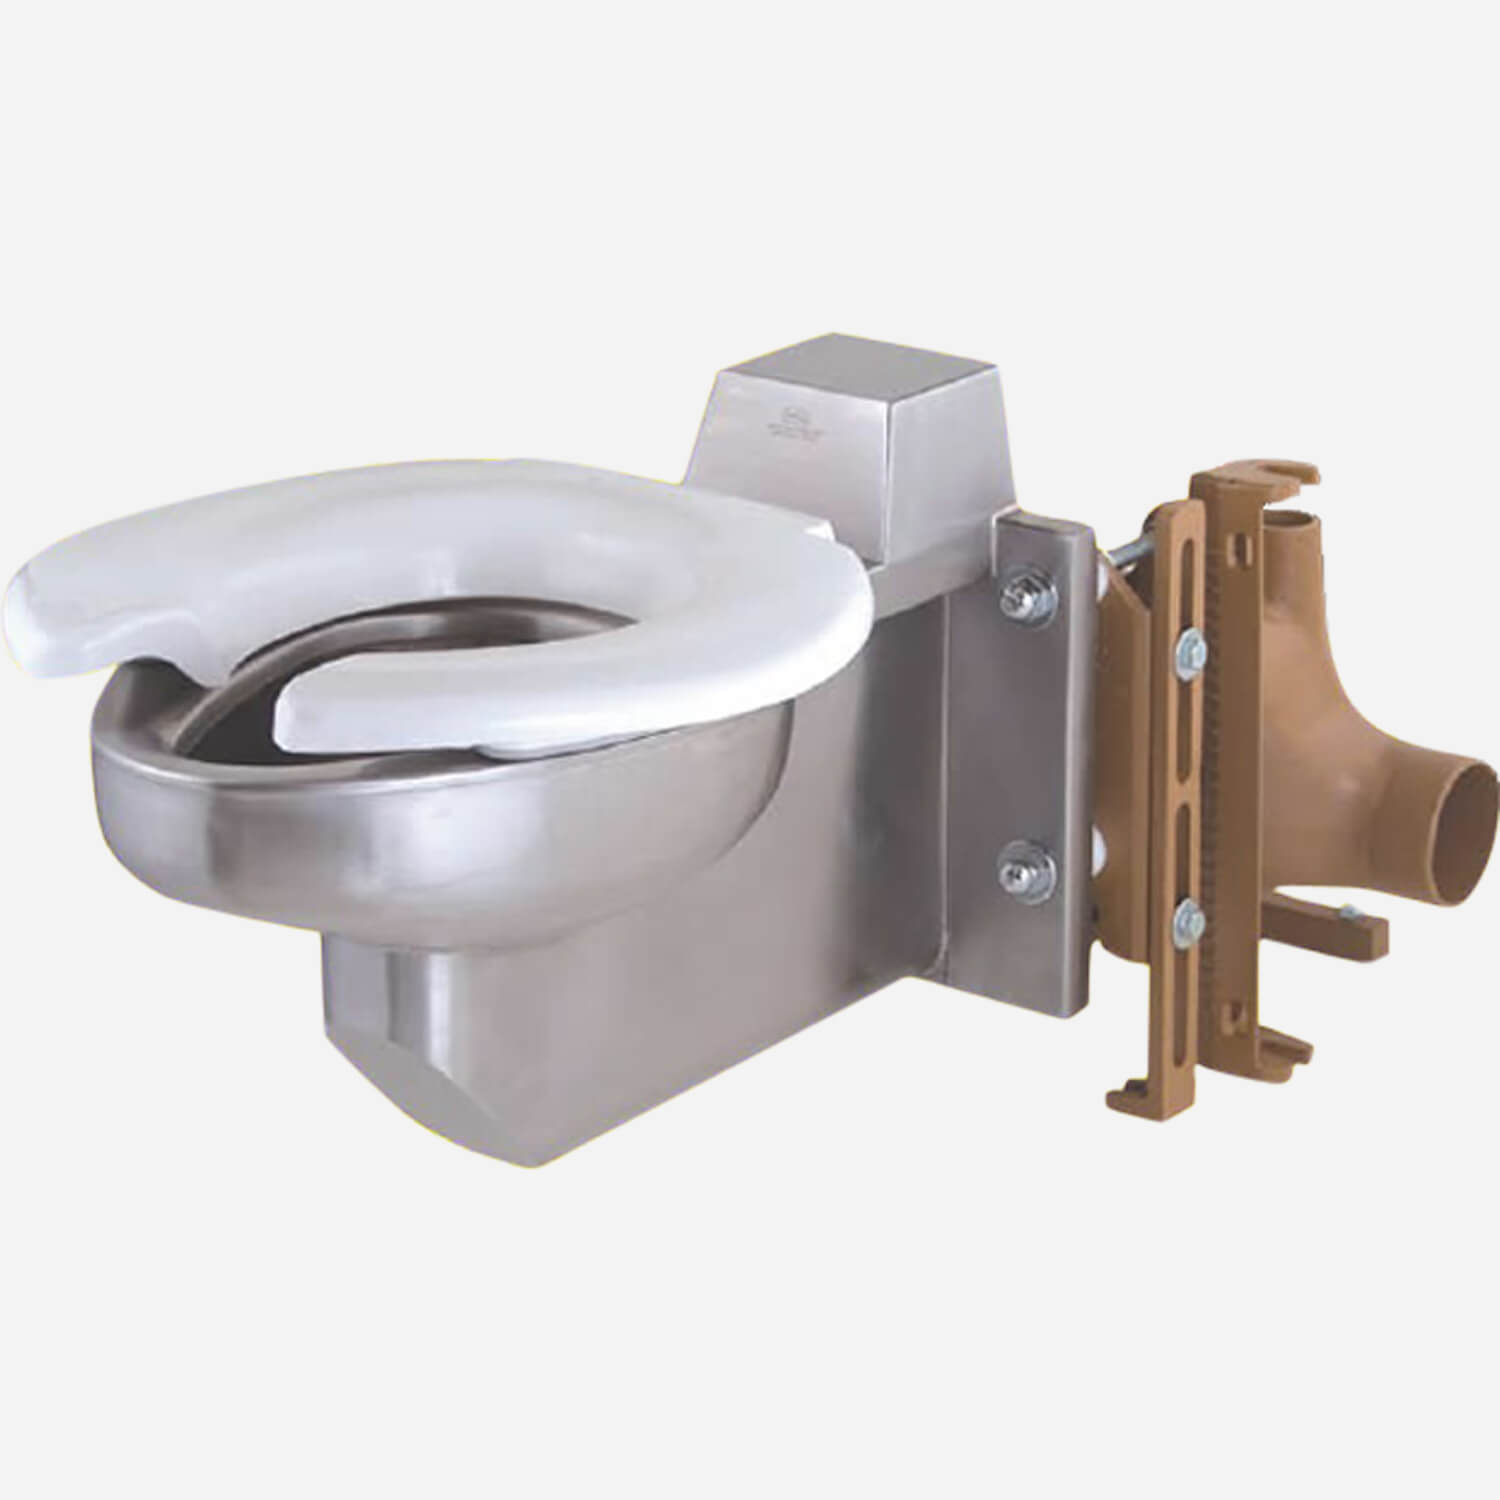 bariatric wall mounted toilet